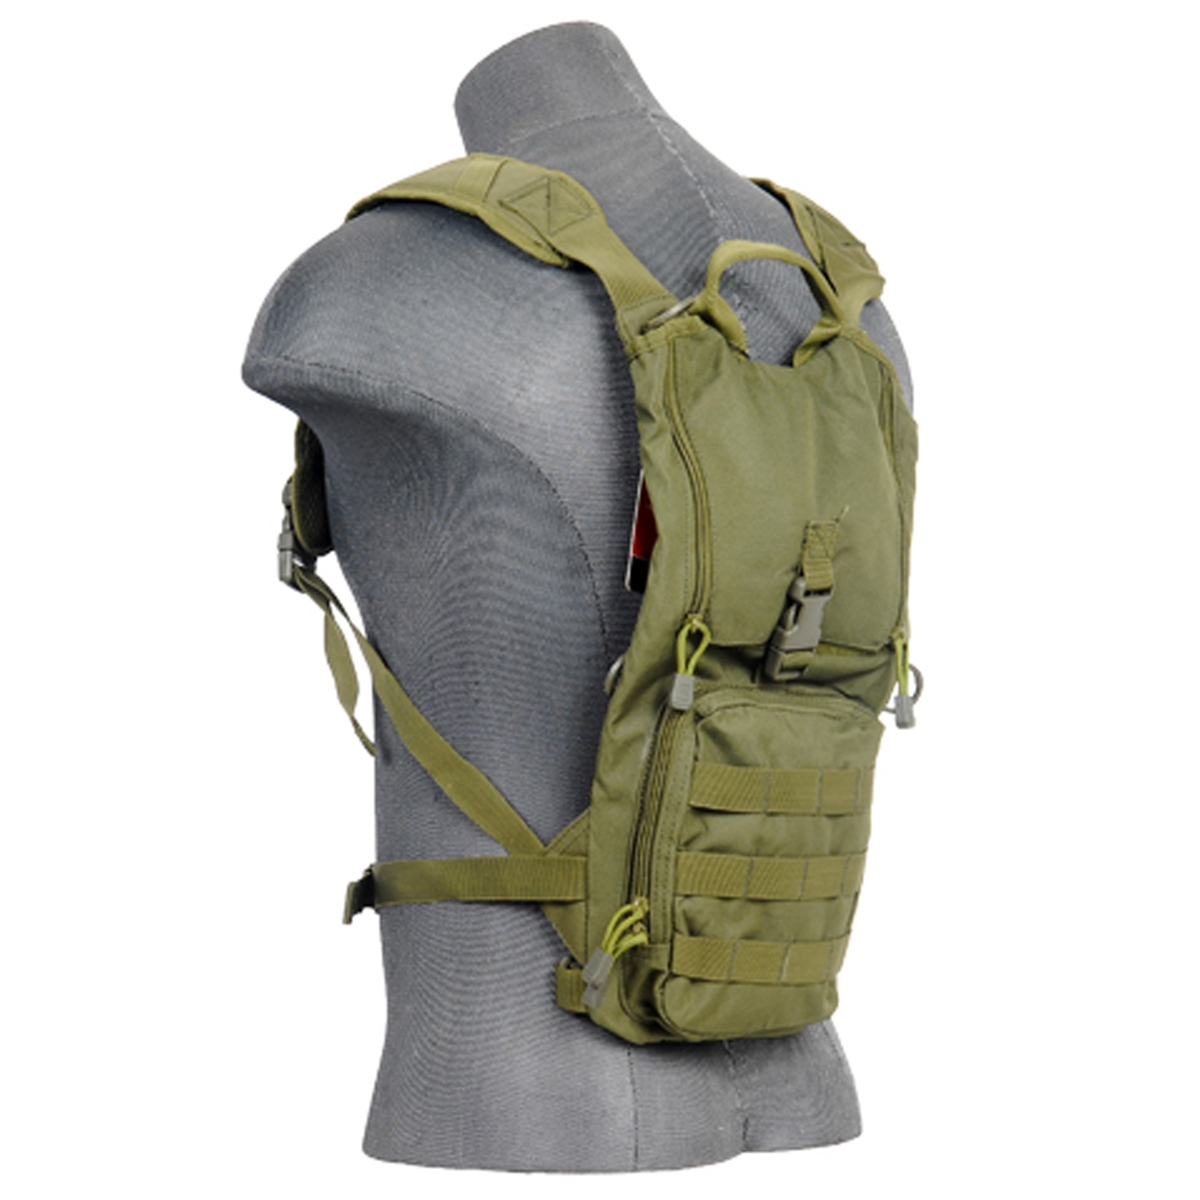 Lancer Tactical Light Weight Hydration Camel Pack in OD For 2.5L Bladders - by